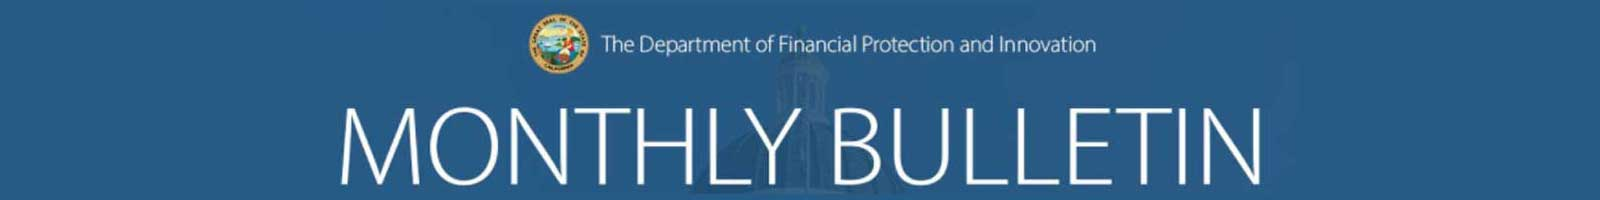 Department of Financial Protection and Innovation Monthly Bulletin